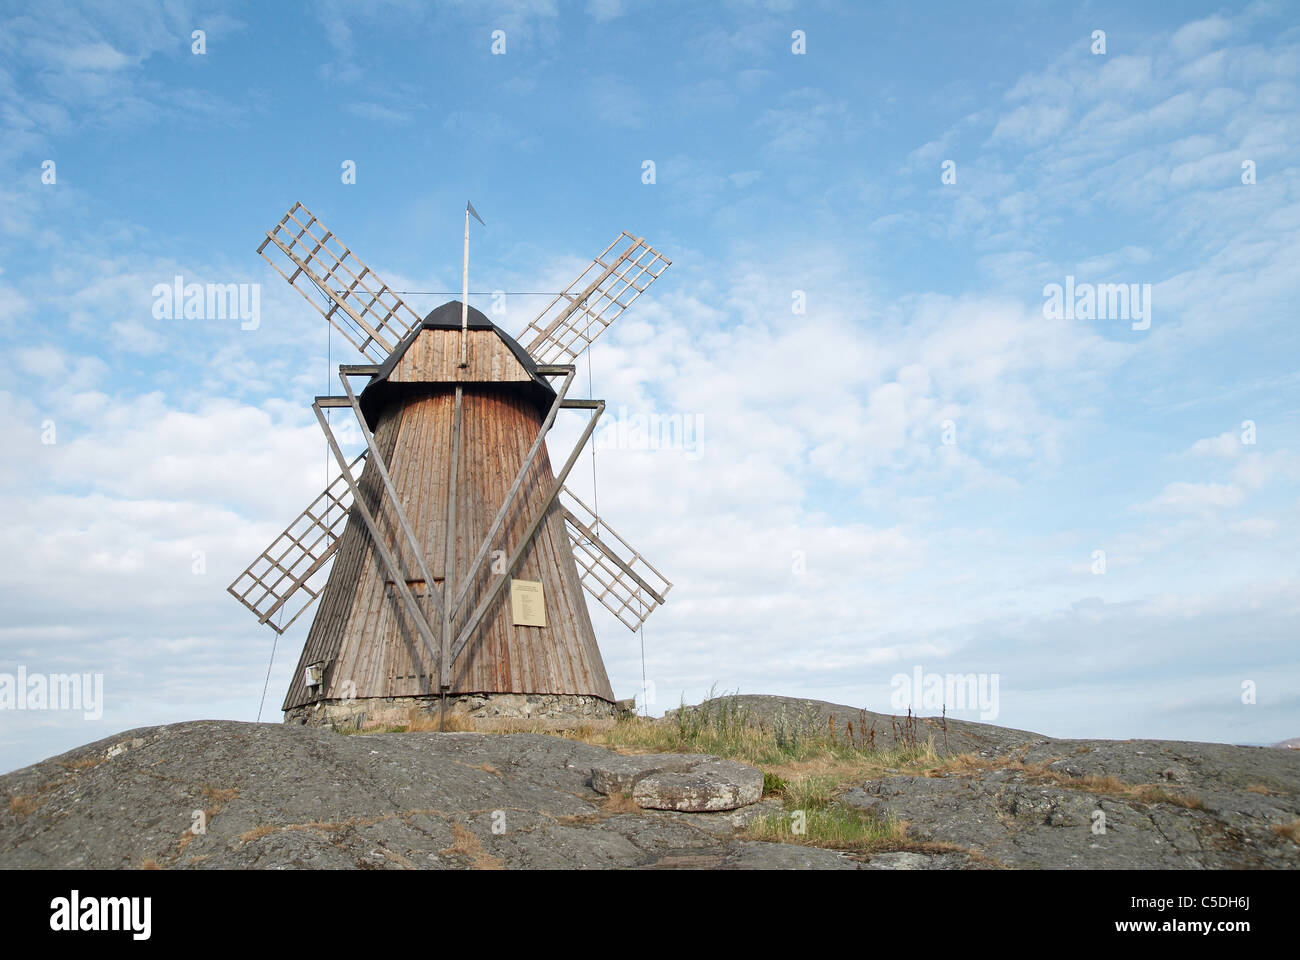 Low angle view of an old wooden windmill against blue sky and clouds - Stock Image